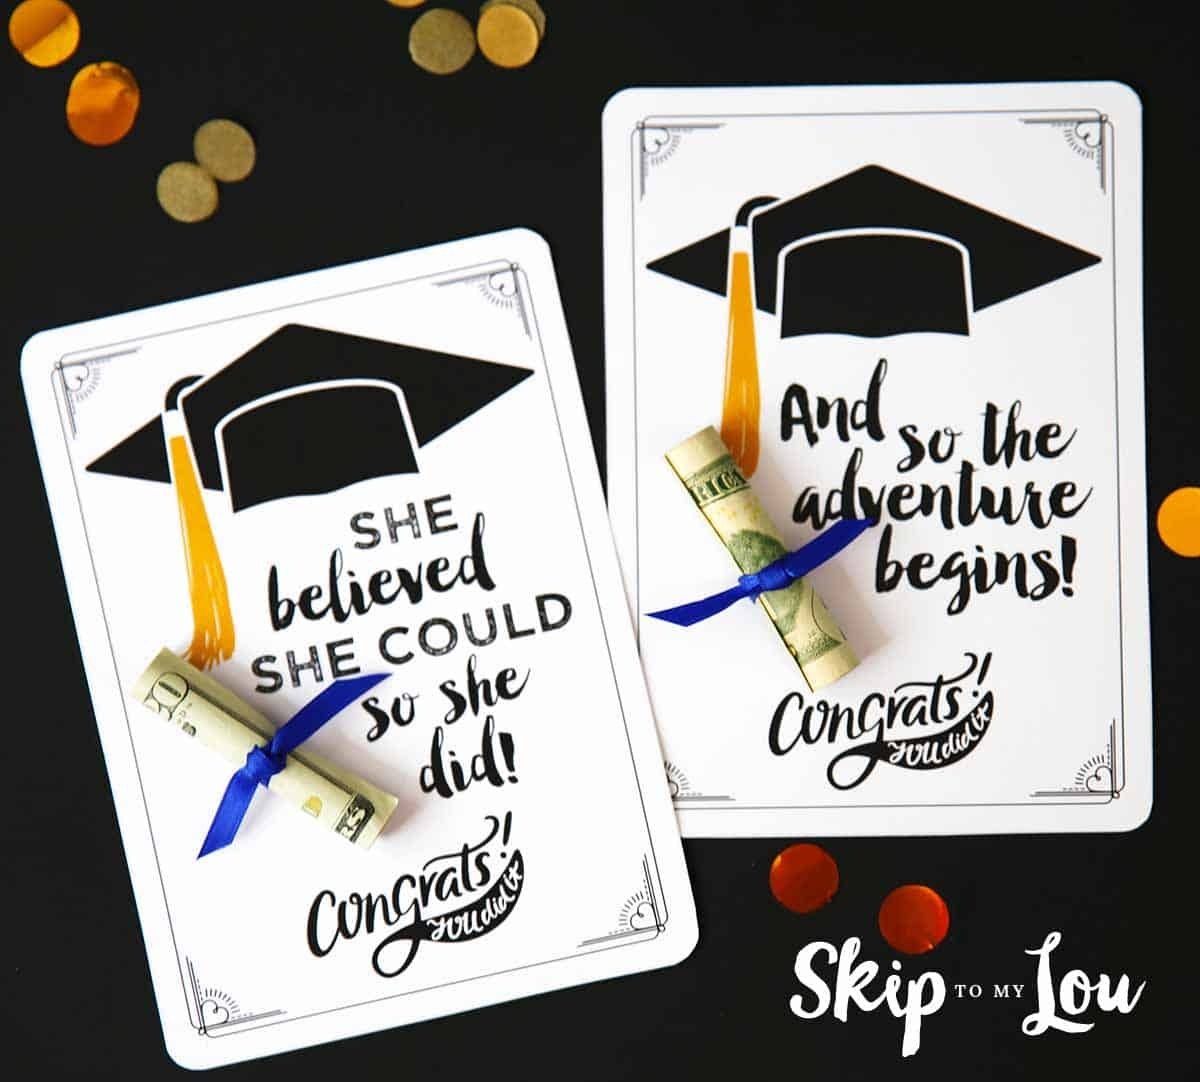 Free Graduation Cards With Positive Quotes And Cash! - Free Printable Graduation Cards